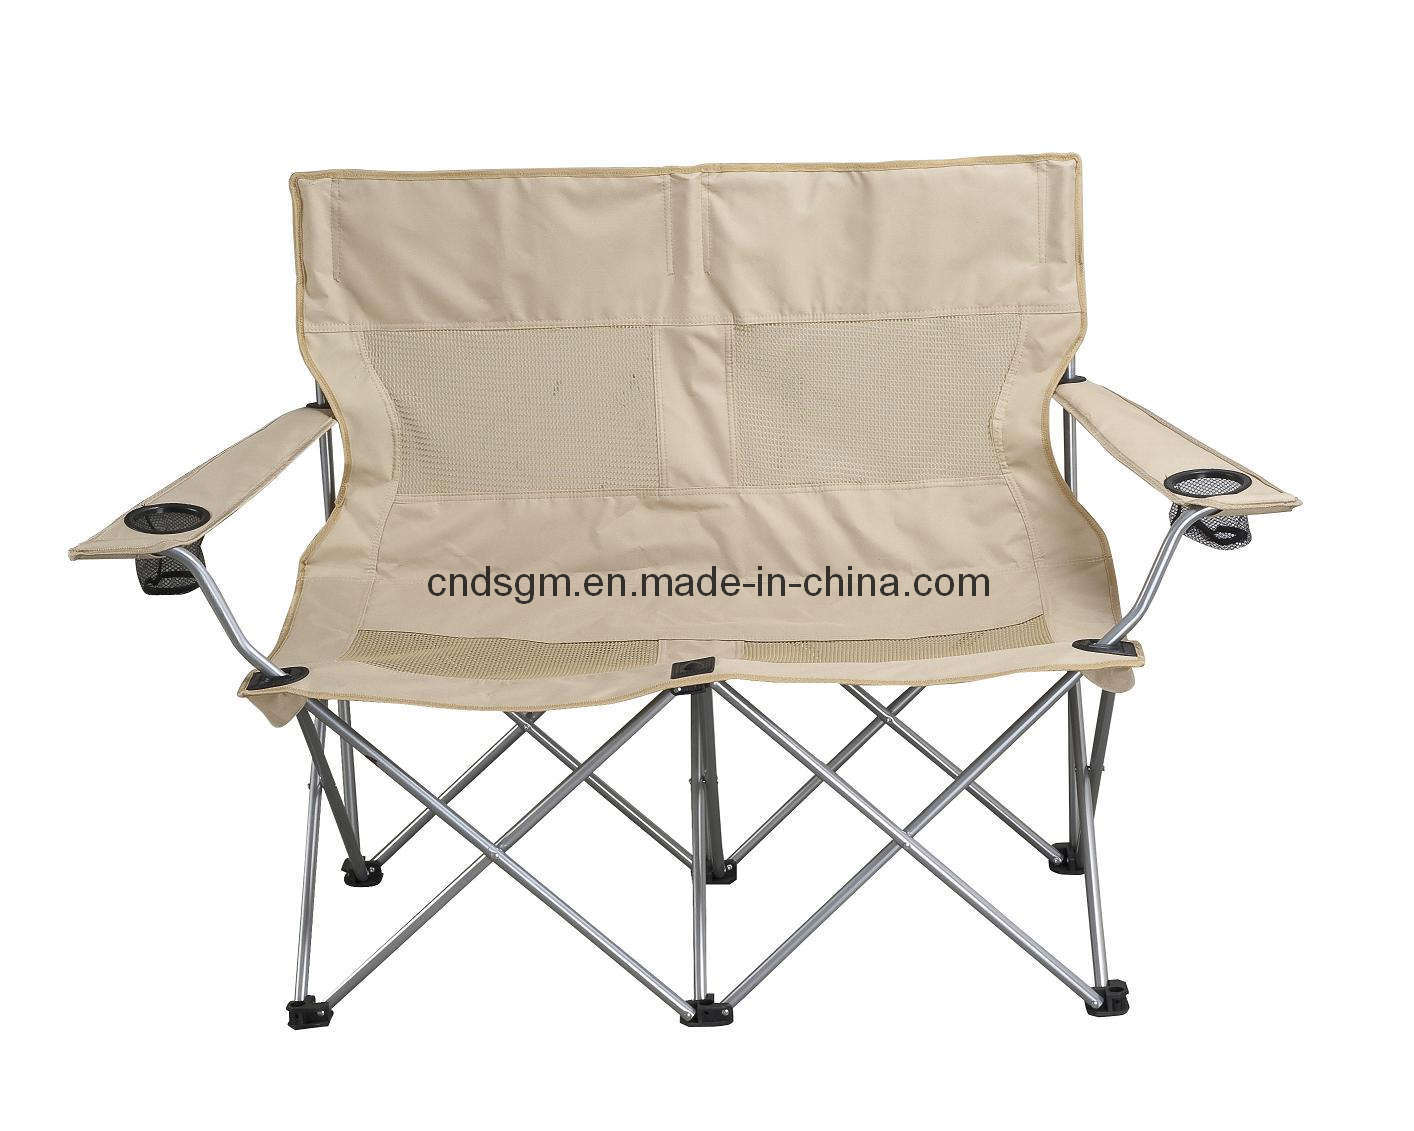 Double Folding Camping Chair Untitled Seat9295 Tumblr